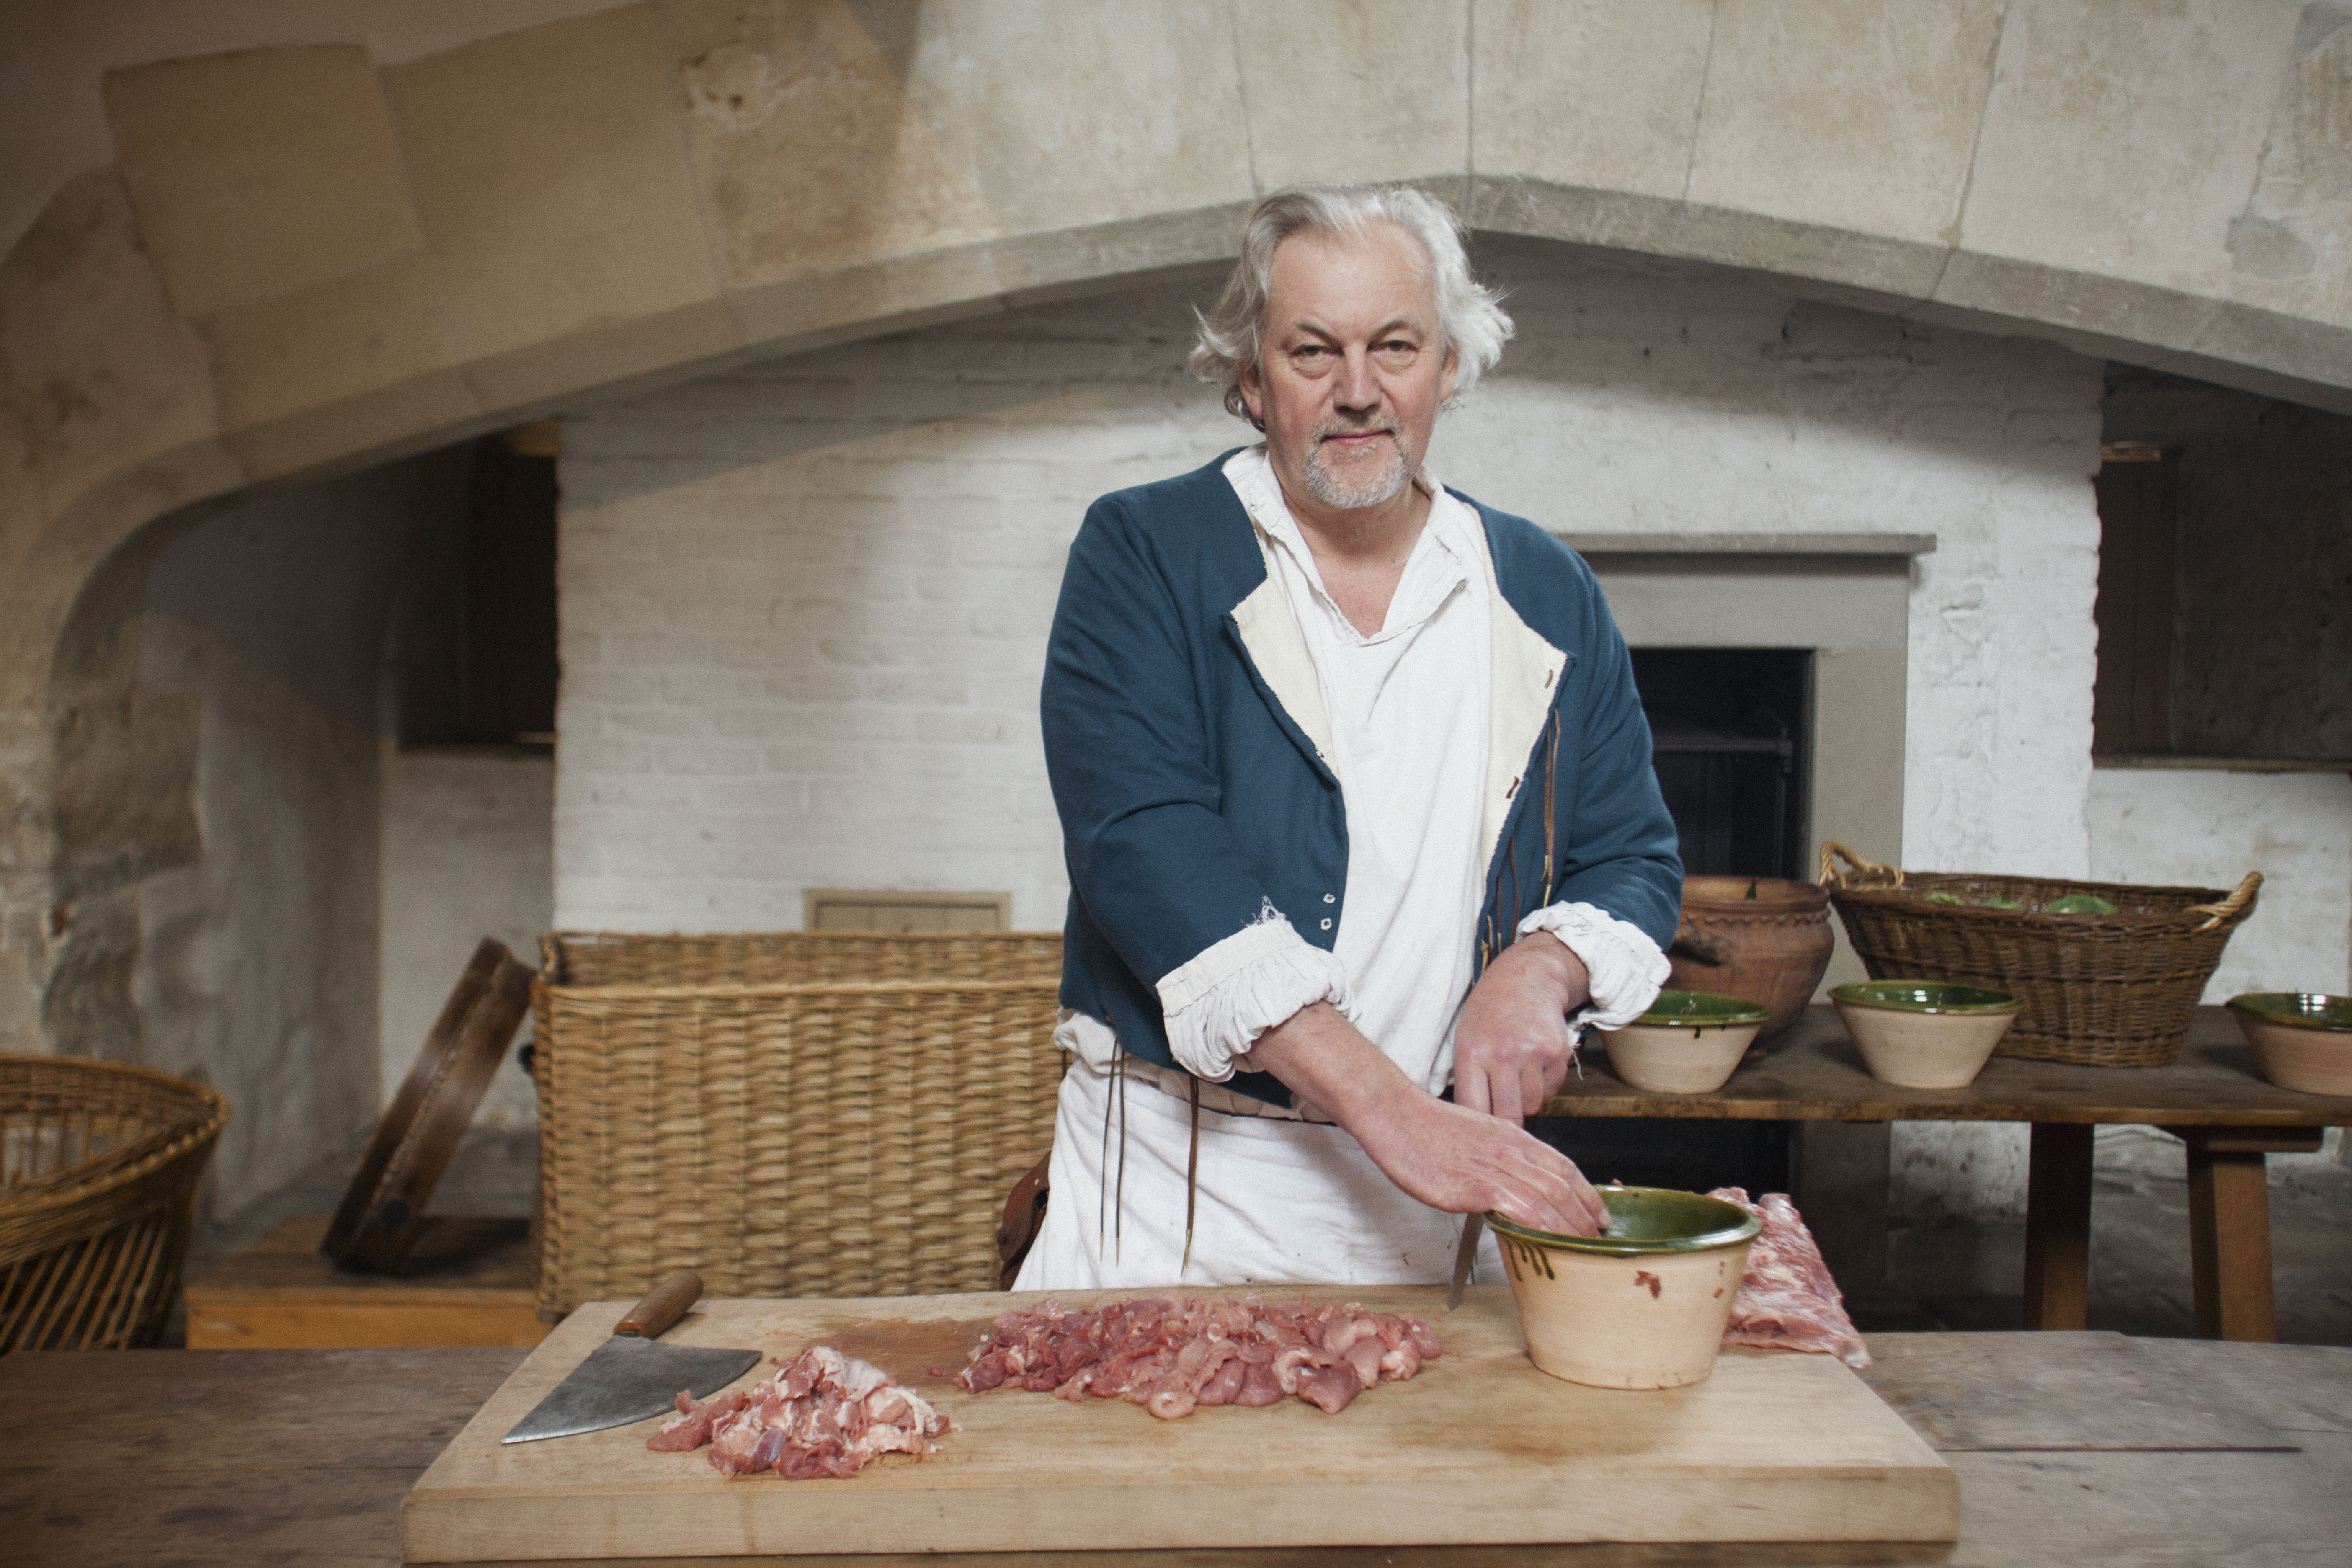 A photograph of a reenactment in a kitchen, with a cook dicing meat.